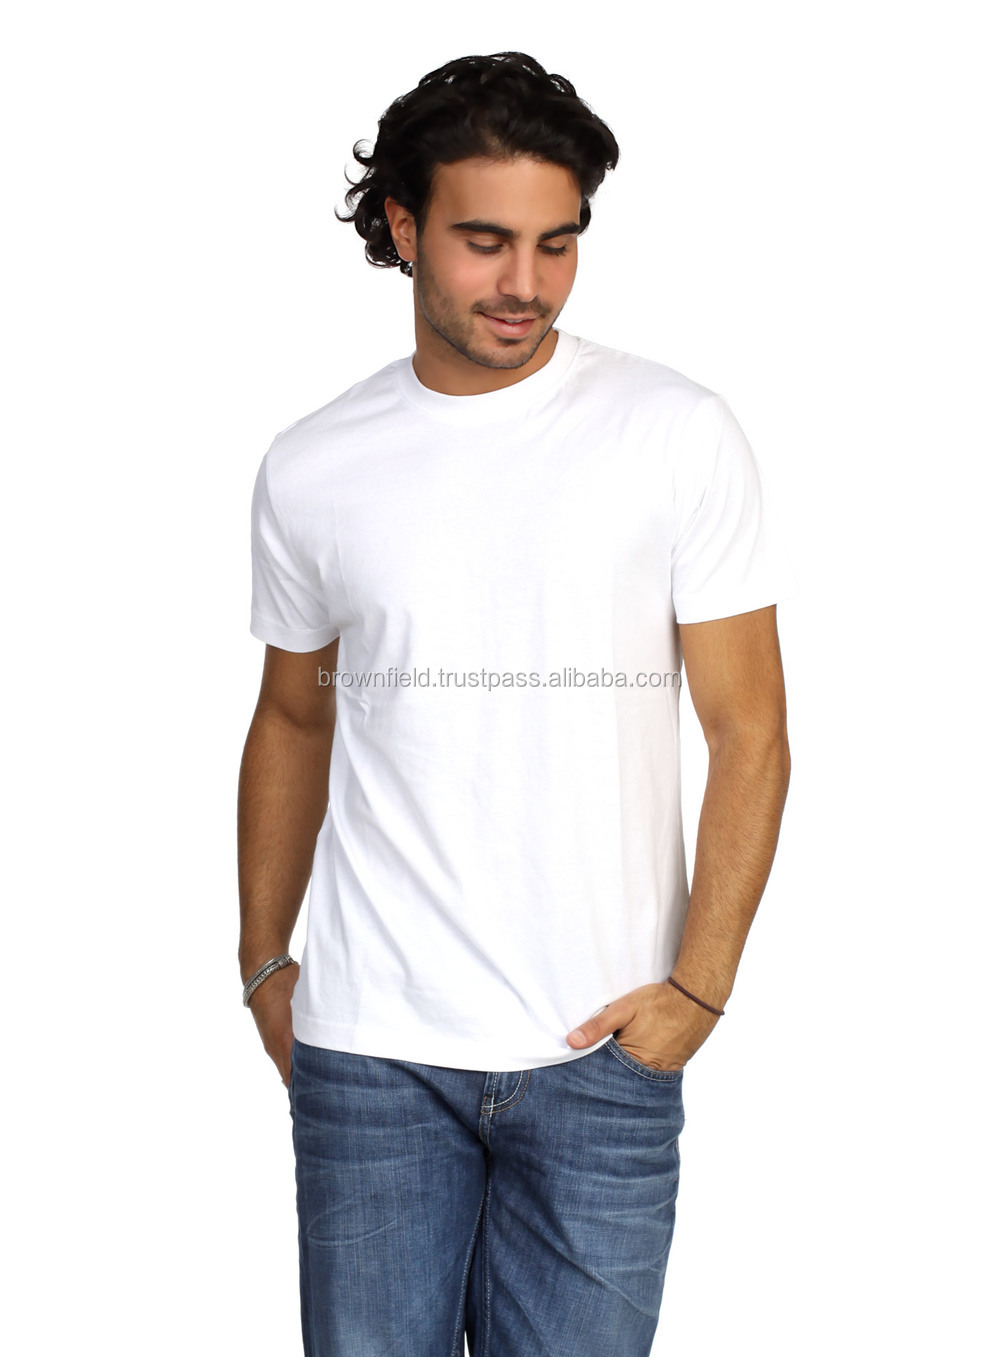 T shirt Factory Bangladesh Custom Print 100% Cotton Plain Blank and Custom Printing T-shirt